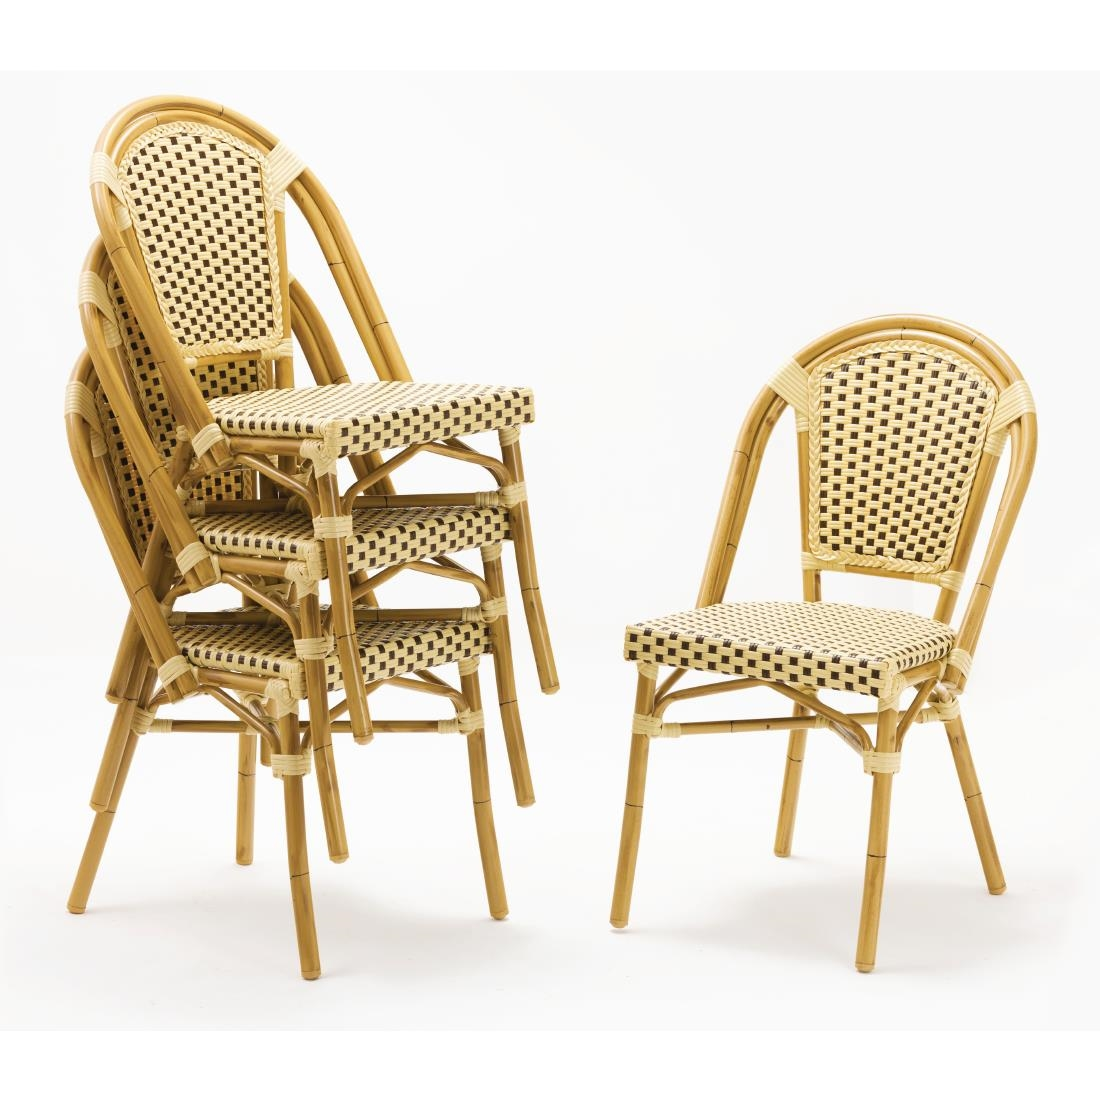 Wicker Side Chair CF40 - Brown + Cream